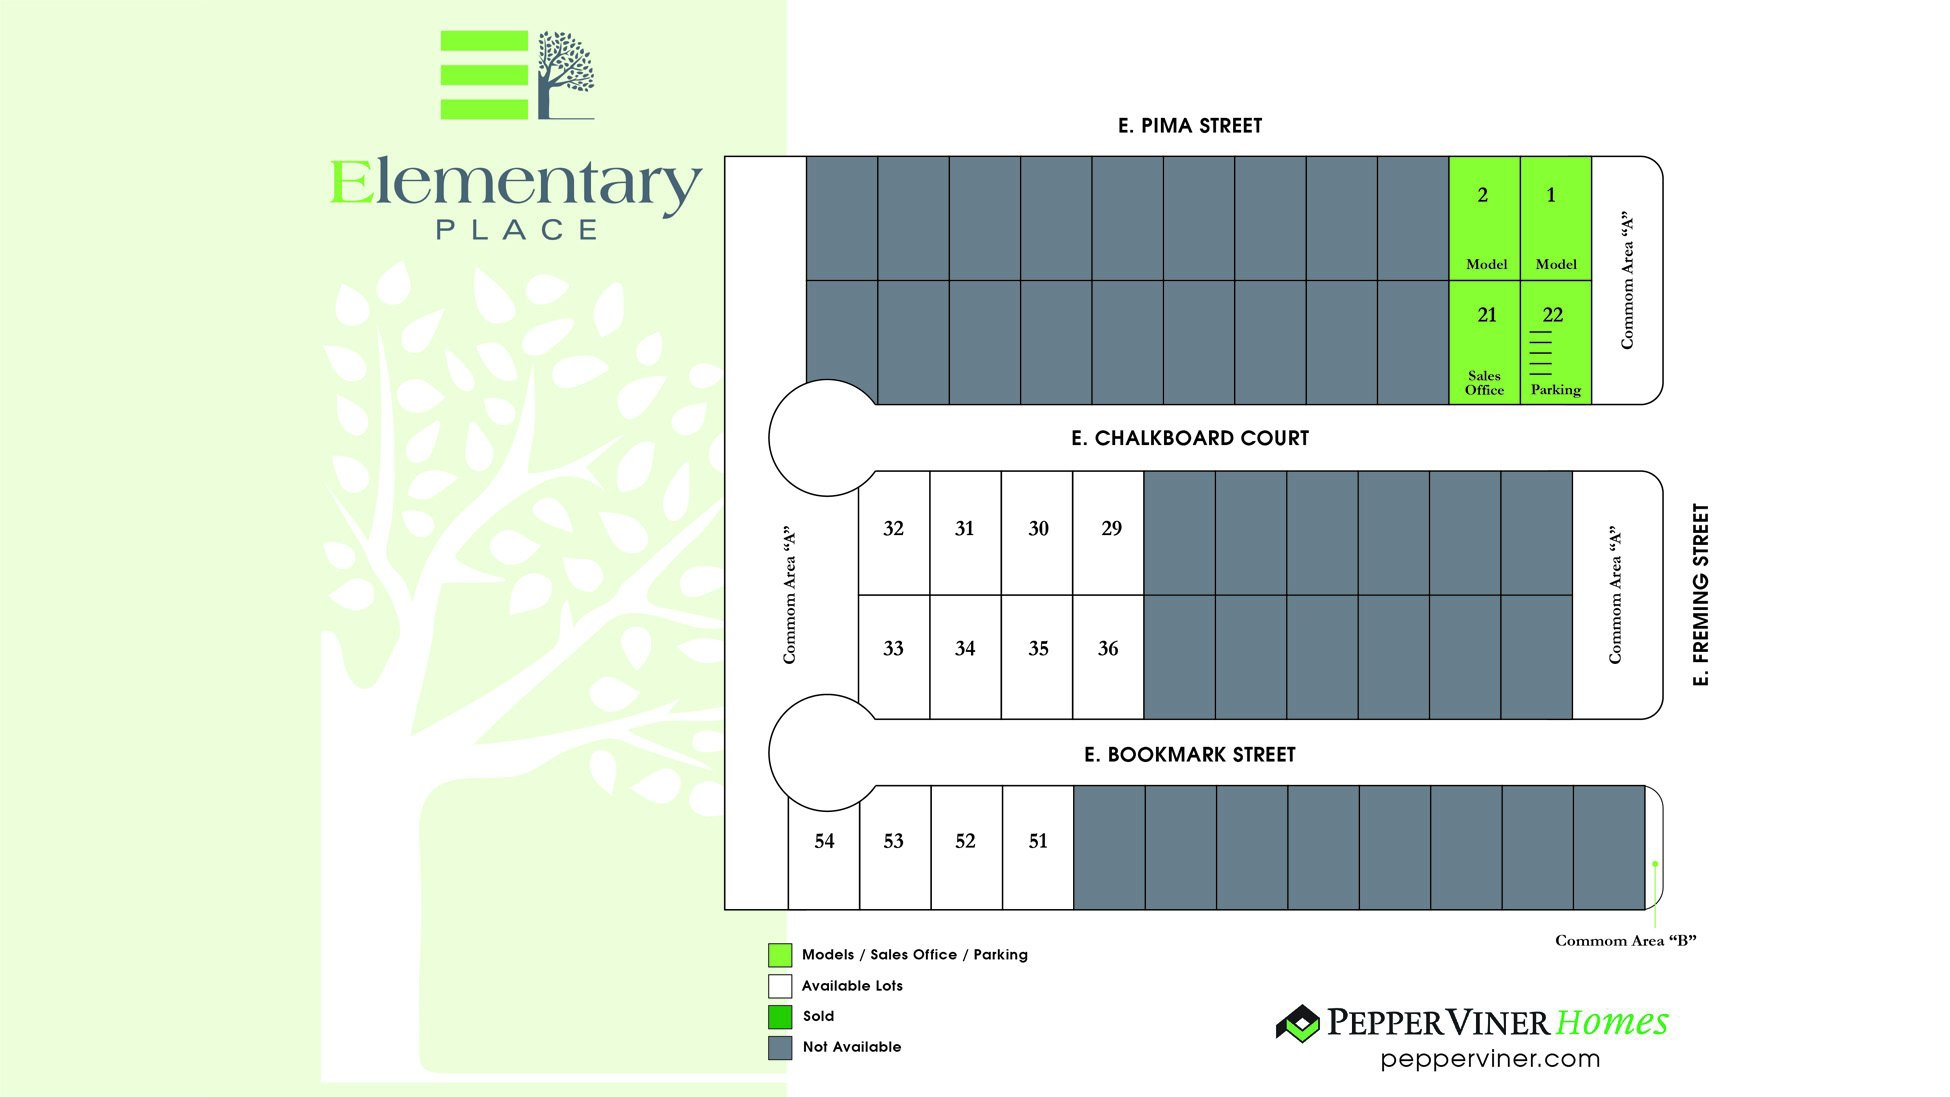 Elementary Place